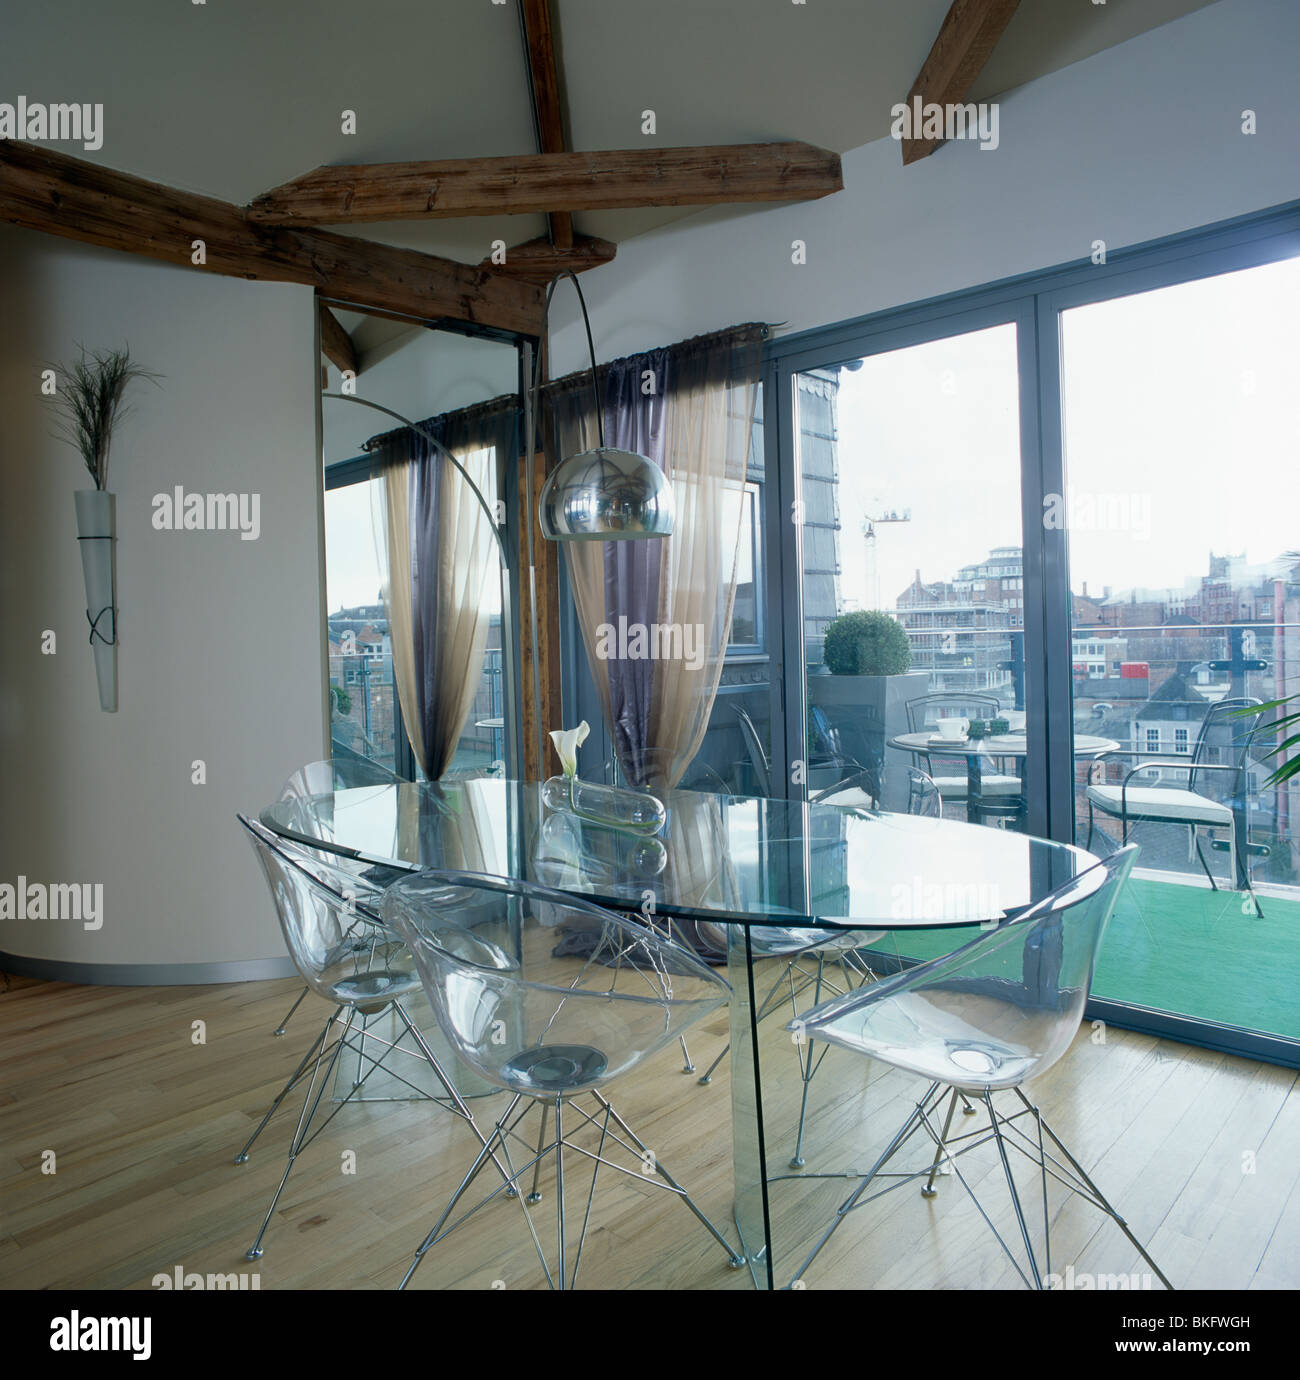 Oval Glass Table And Perspex Chairs In Modern Loft Conversion Dining Room  With Glass Doors With View Of The City